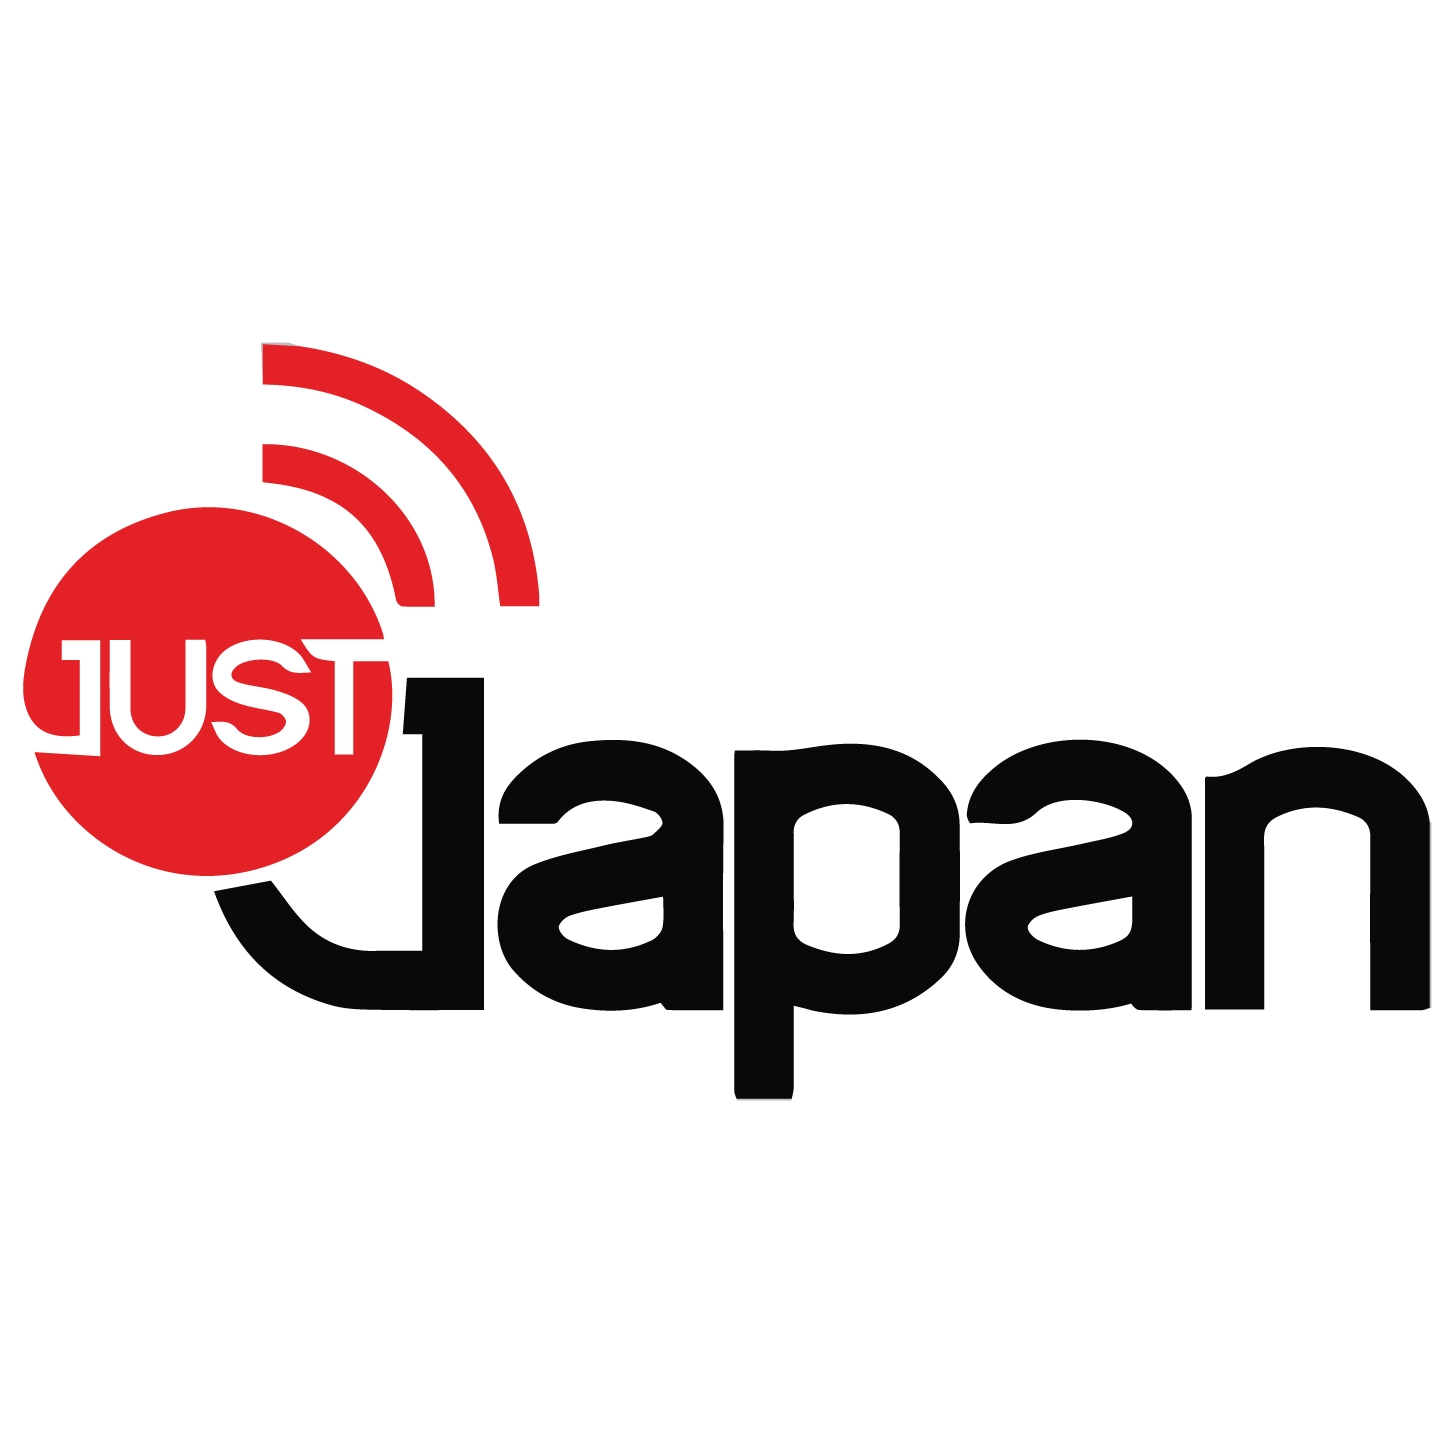 Just Japan Podcast 3: Being in the U.S. Military in Japan